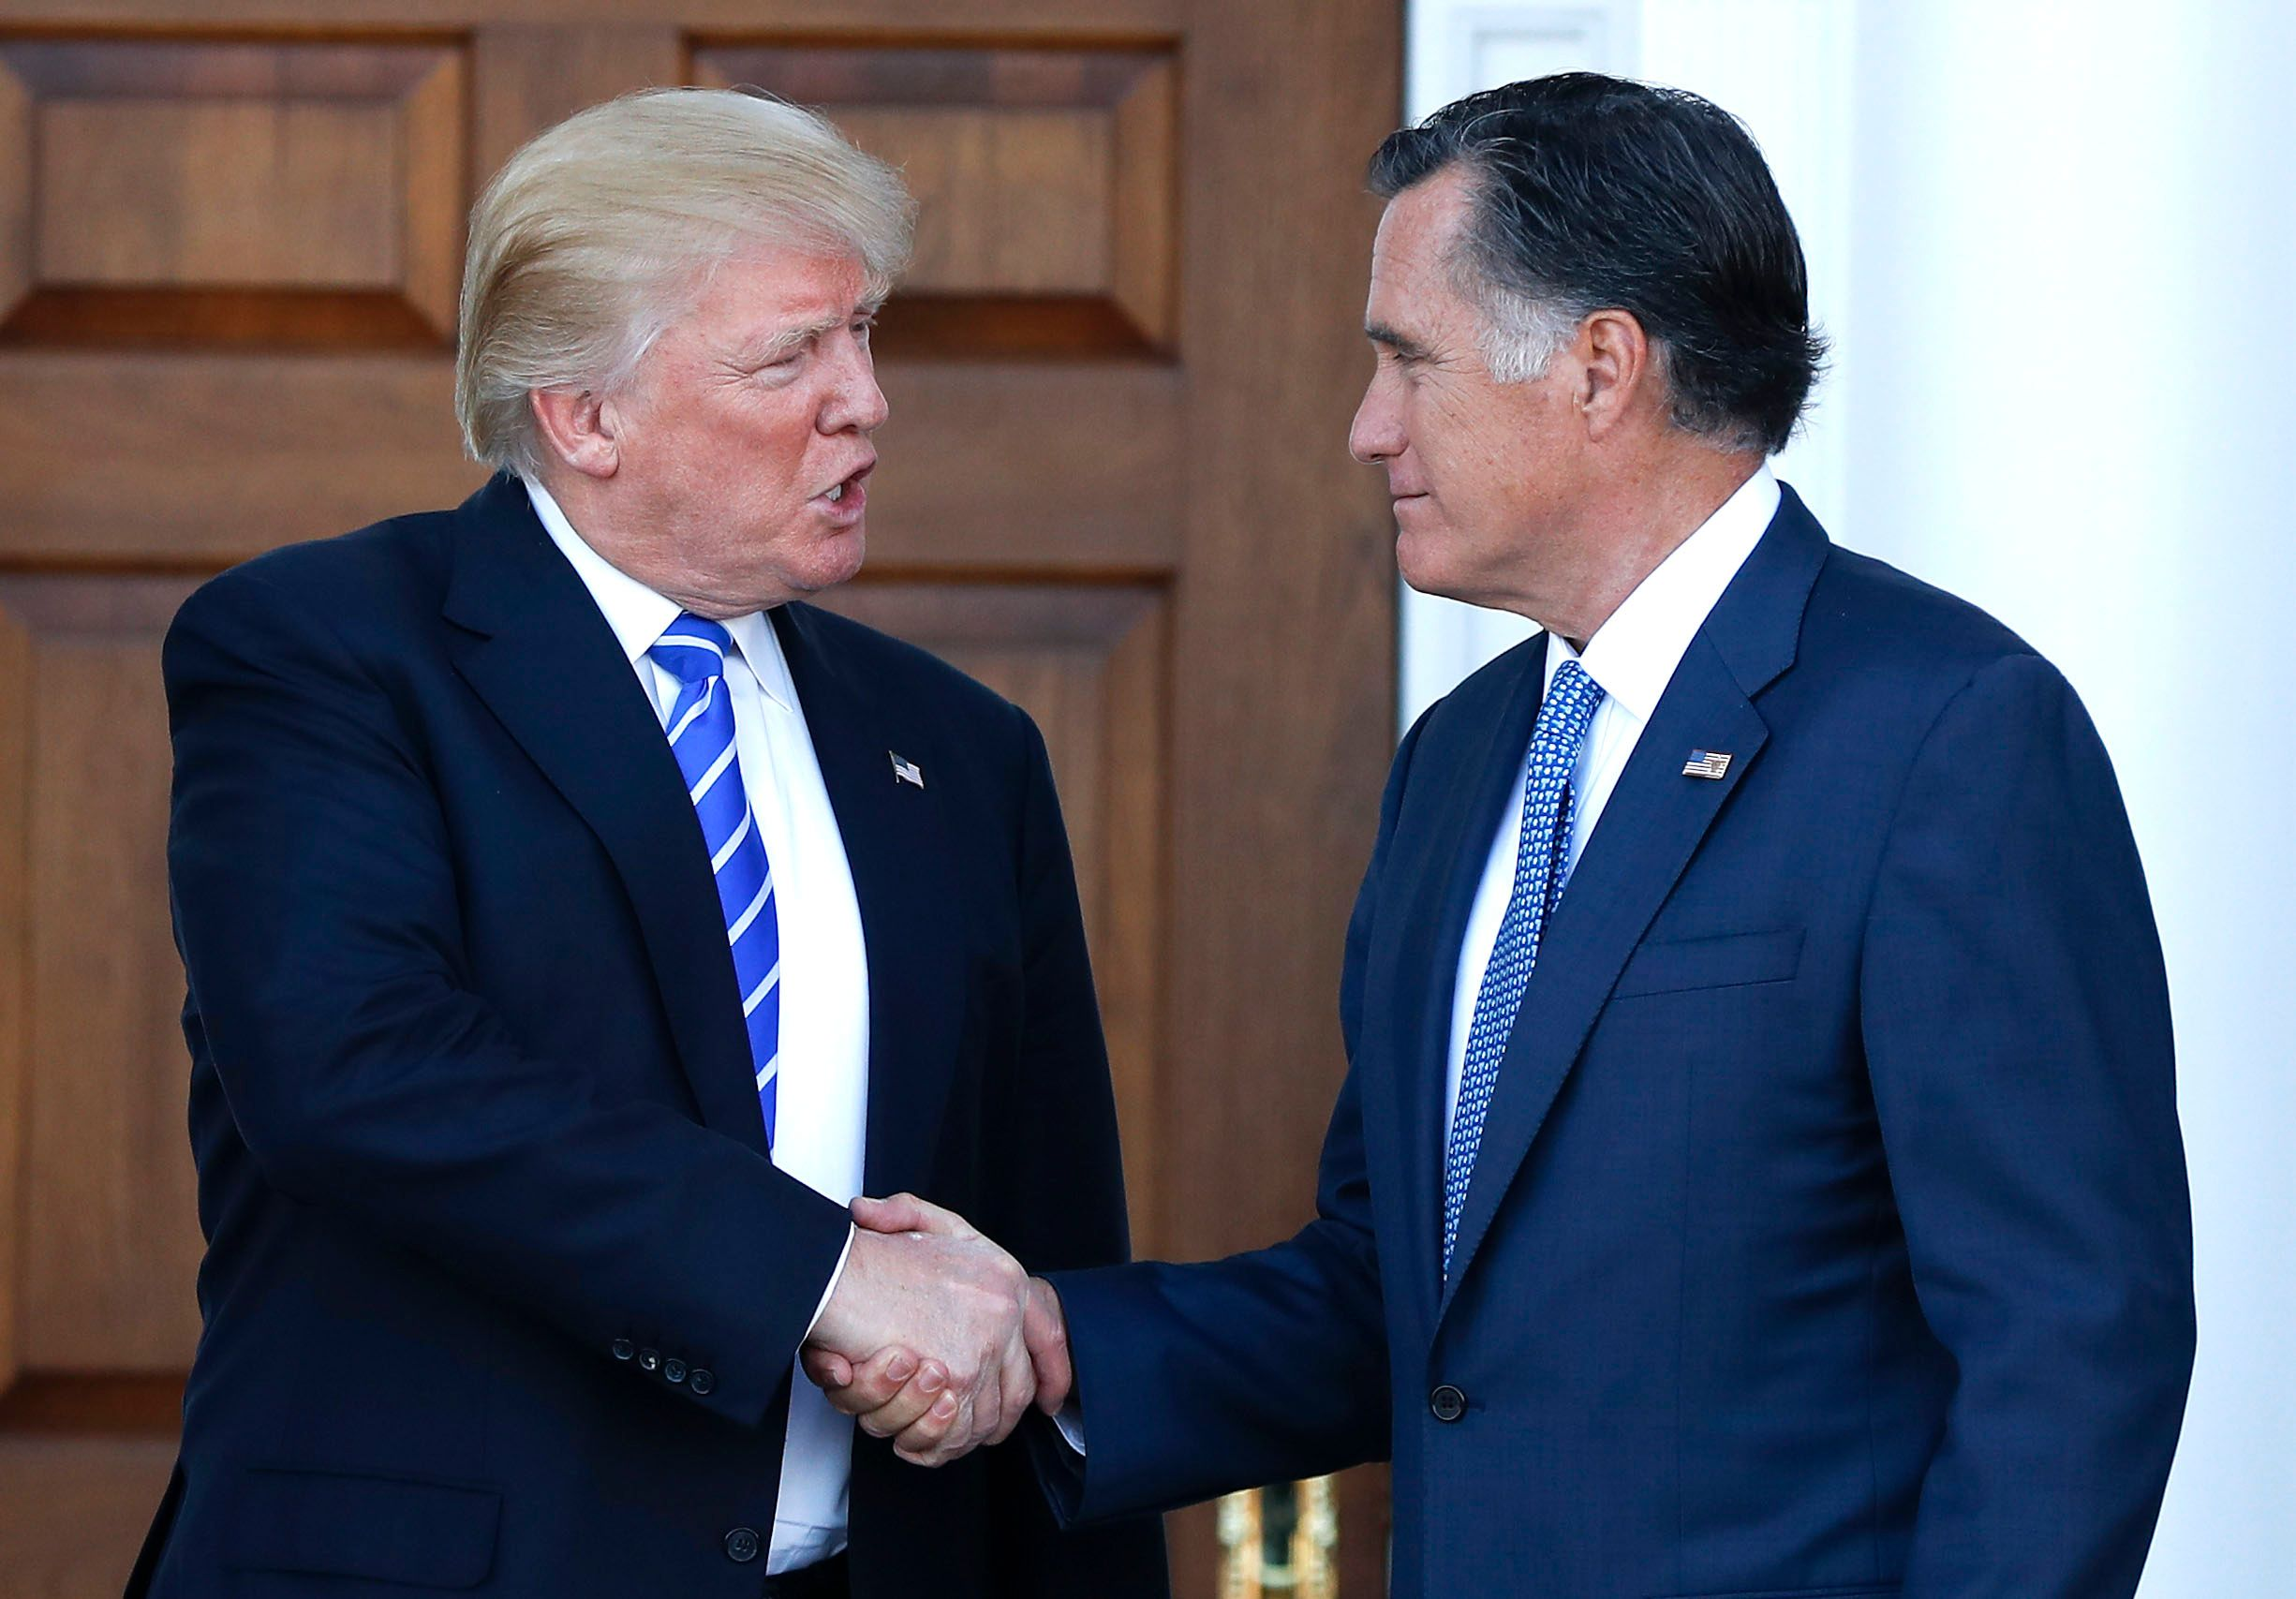 Once a bitter rival, Mitt Romney now predicts Donald Trump will win big in 2020